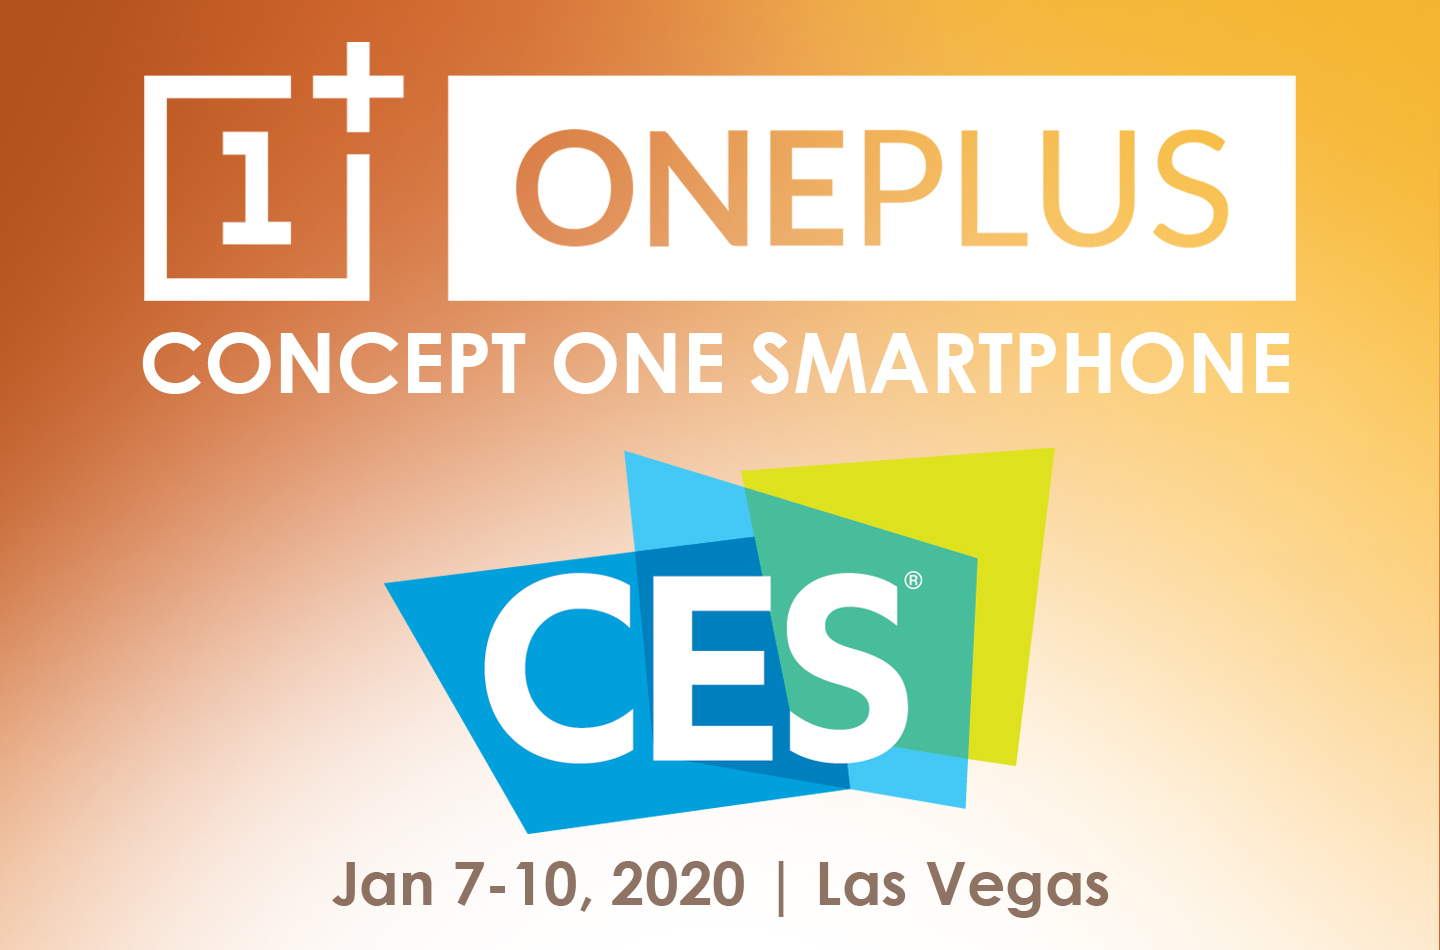 OnePlus Concept One smartphone CES 2020